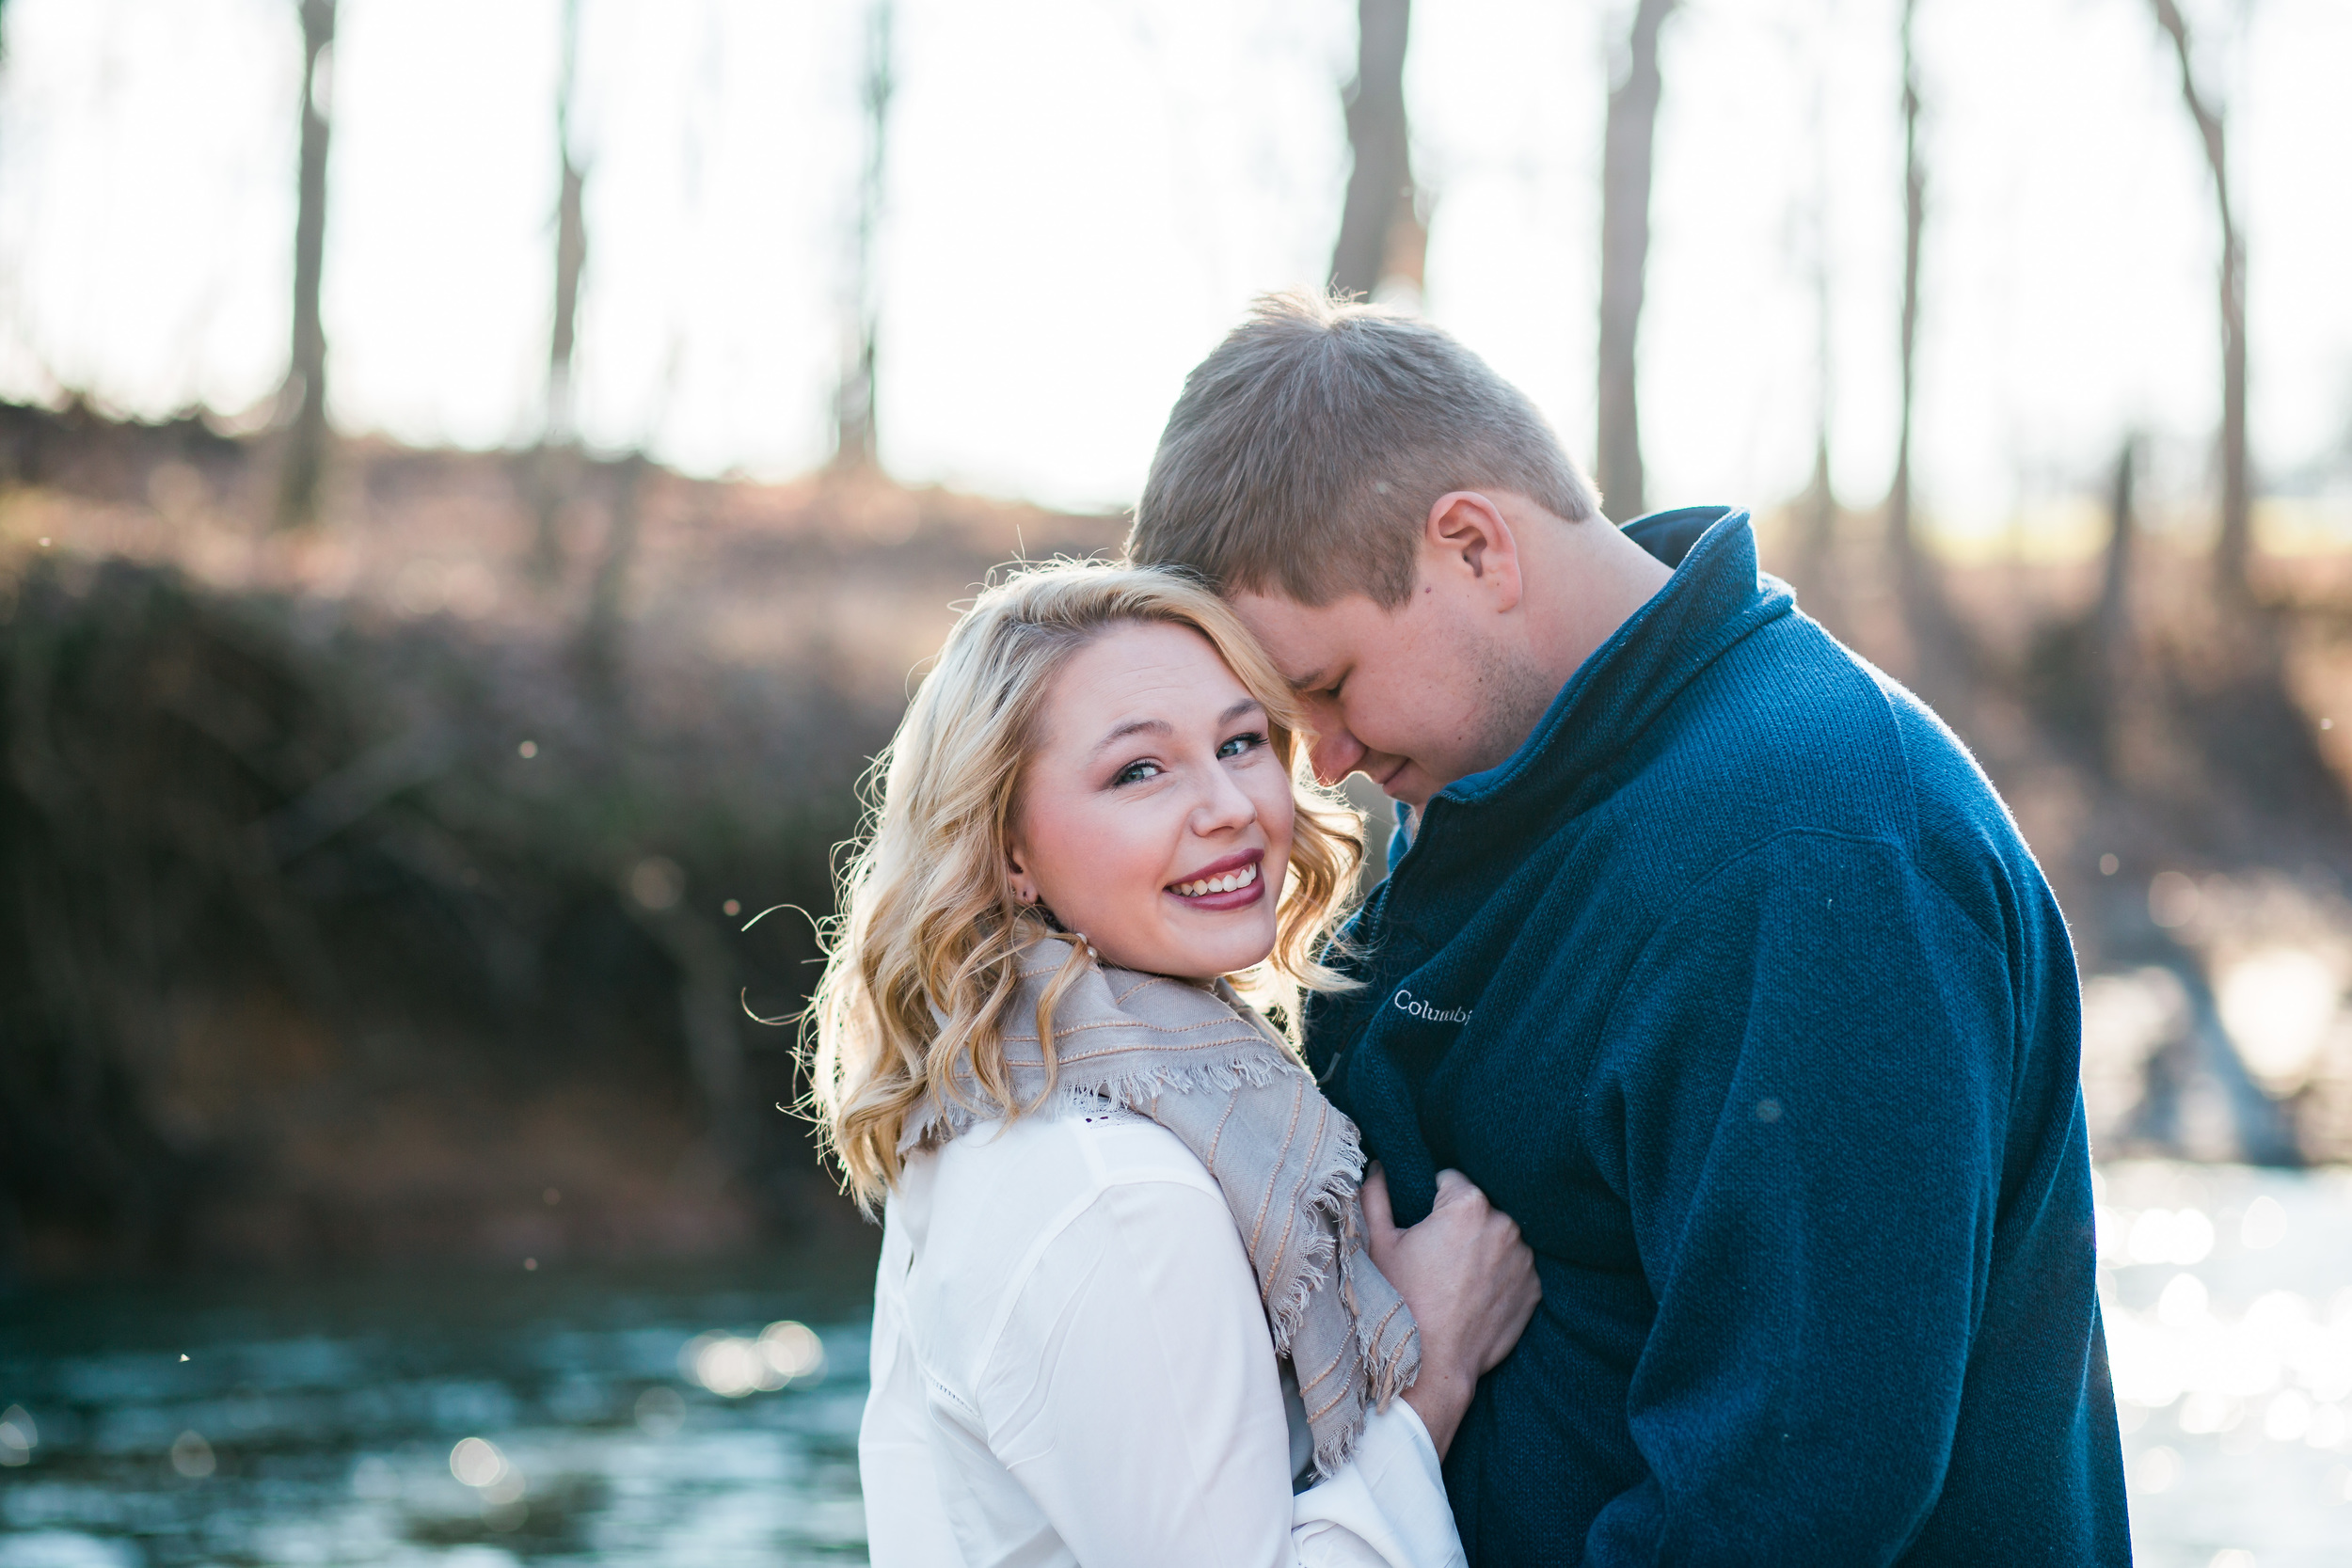 zb_engagement_2616-4.jpg